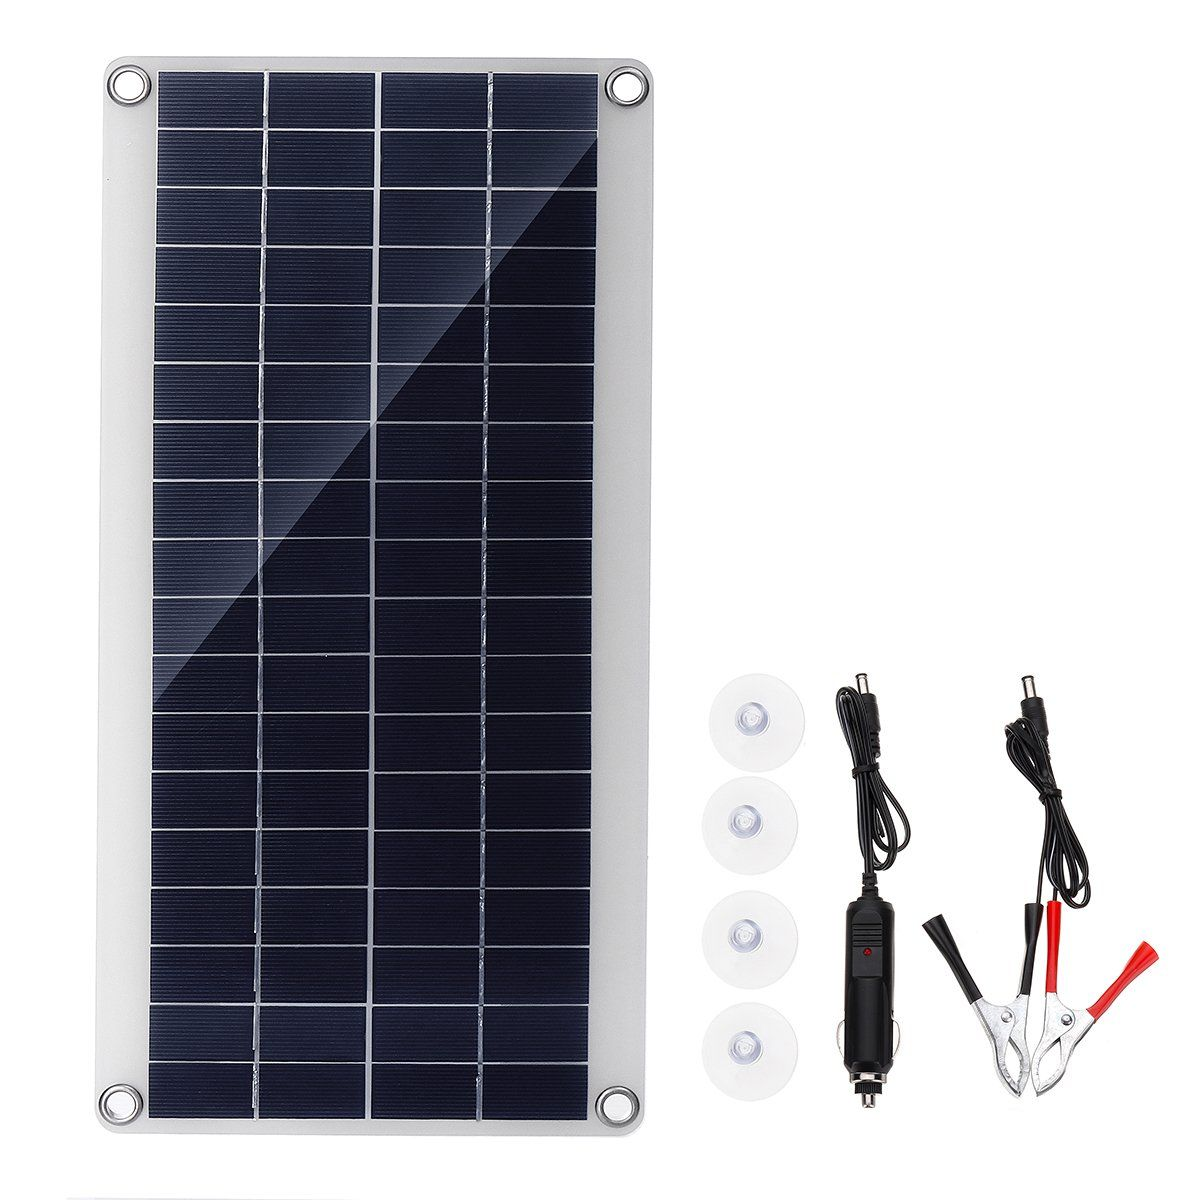 20w Portable Solar Panel Kit Dc Usb Charging Double Usb Port Suction Cups Camping Traveling Solar Panels Solar Panel Kits Portable Solar Panels